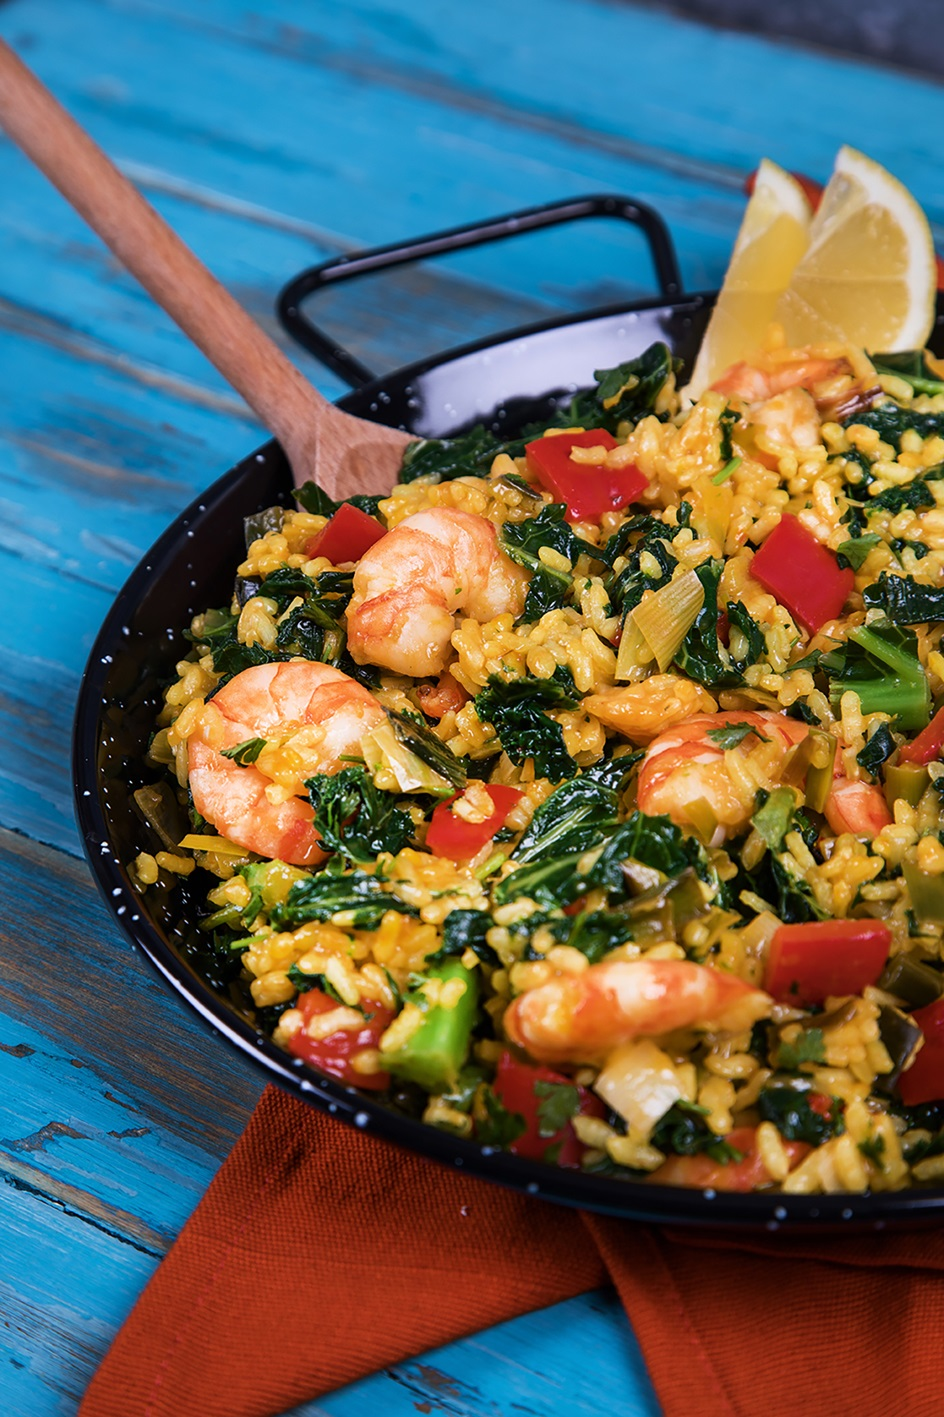 How To Make A Tasty Prawn And Kale Paella